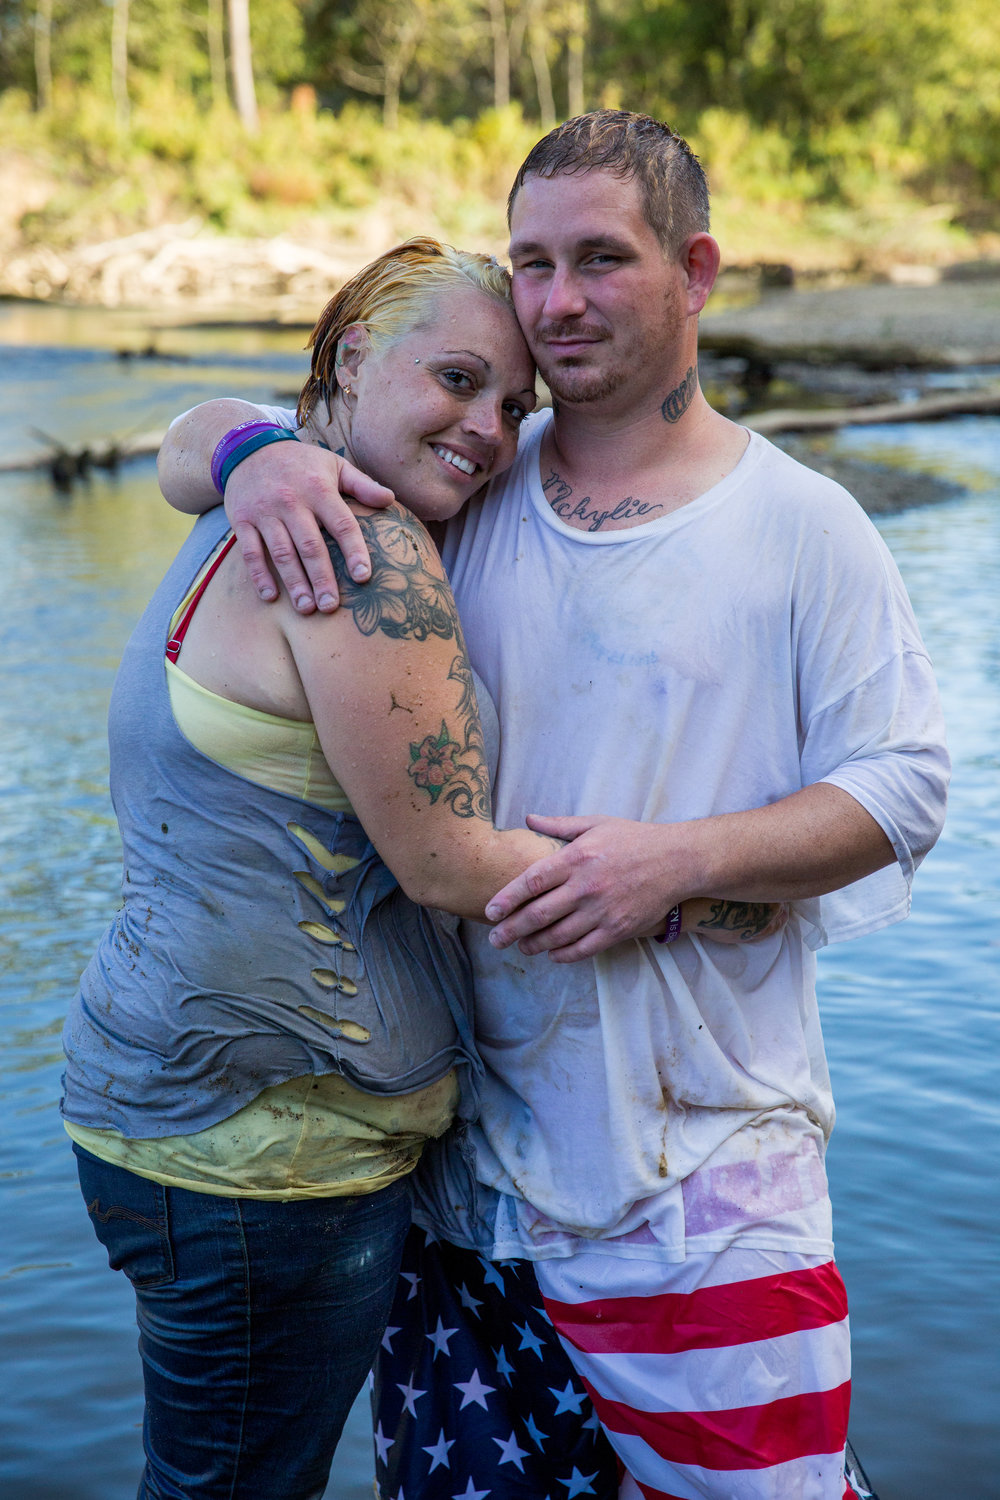 Whitney Johnson and Jeremy Rhoades pose for a portrait after Jeremey's baptism. Whitney was baptized in the same spot along the river near old route 33 in Nelsonville just over a year prior.